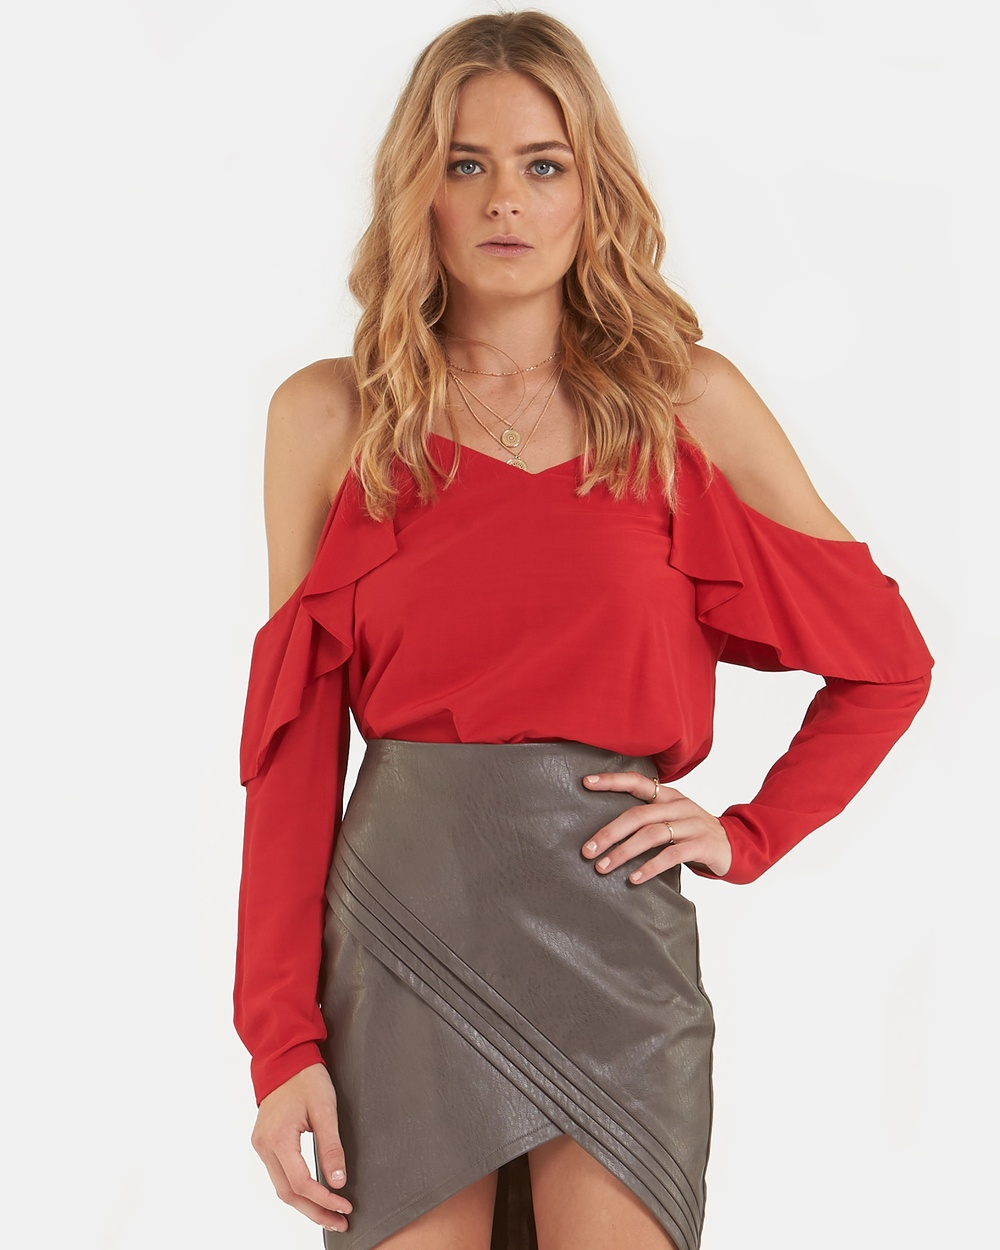 Amelius Milly Top Tops Red Milly Top